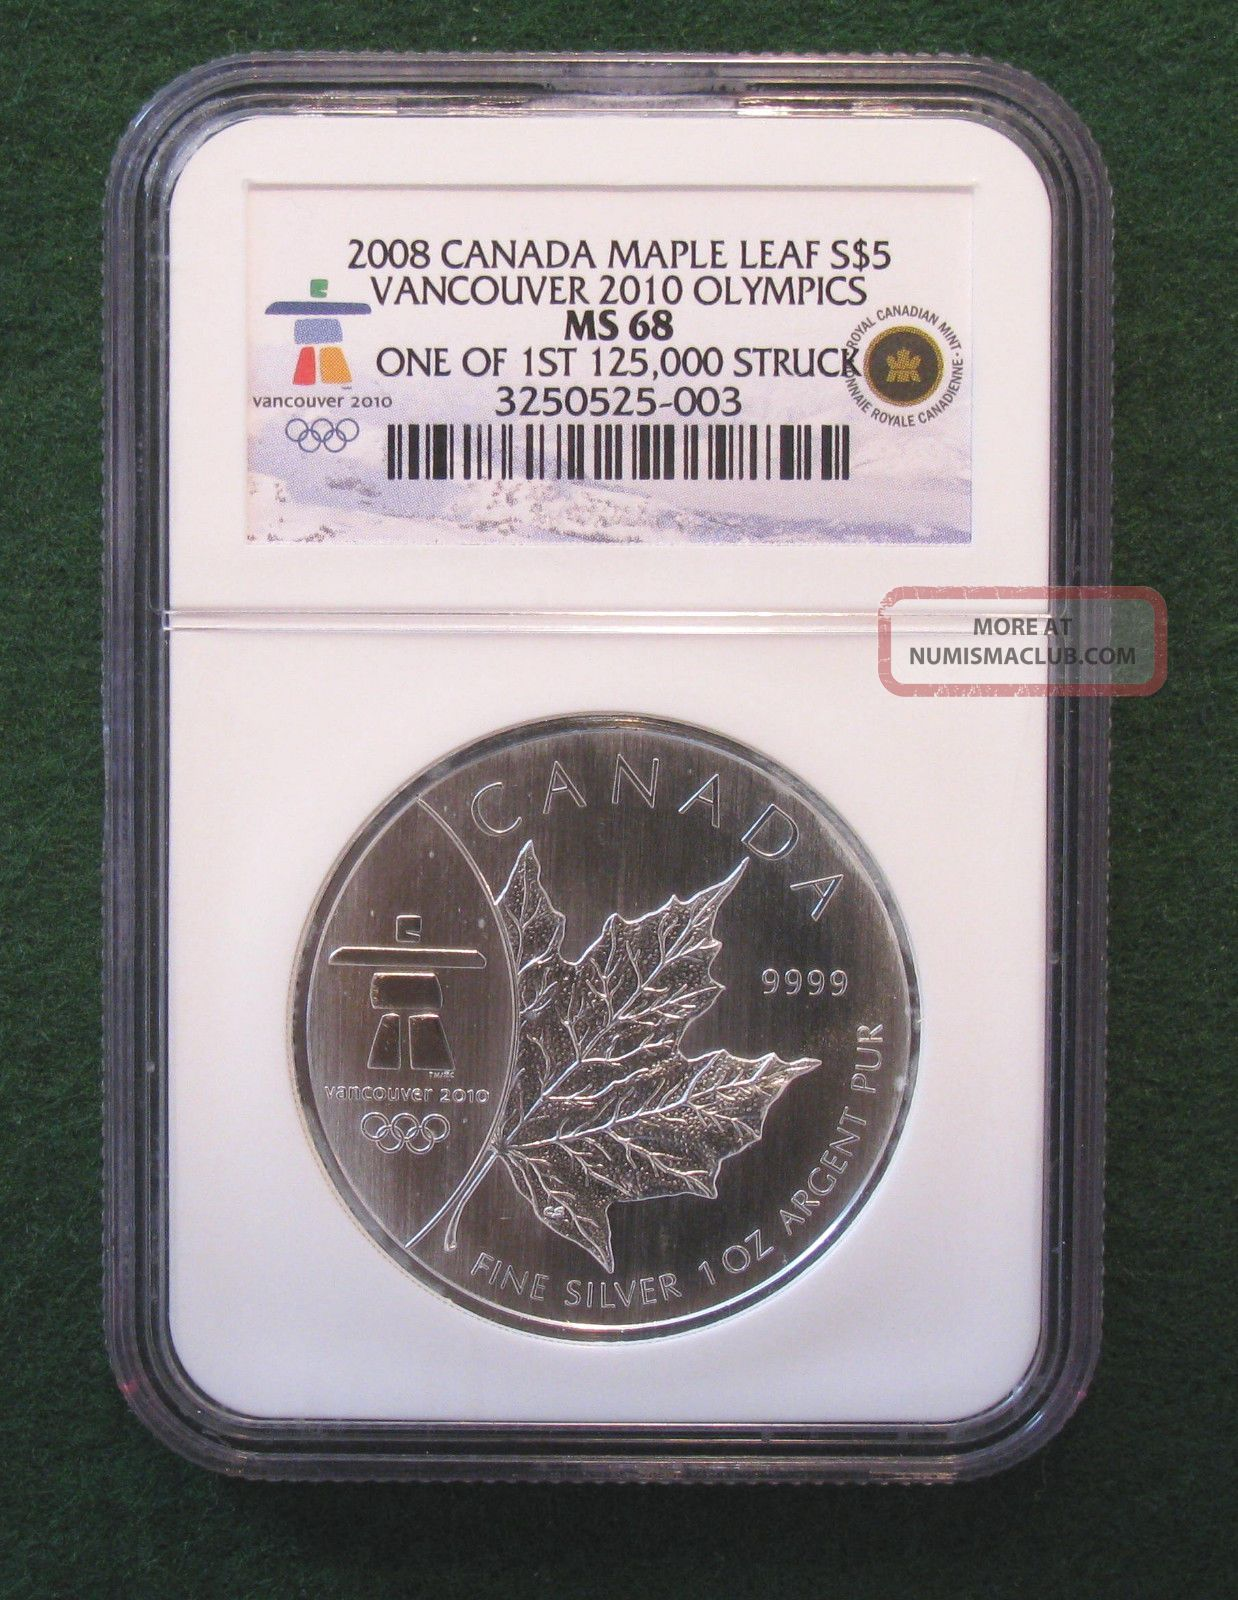 2008 Canada Maple Leaf $5 Vancouver 2010 Olympics Ngc Ms68 Coins: Canada photo